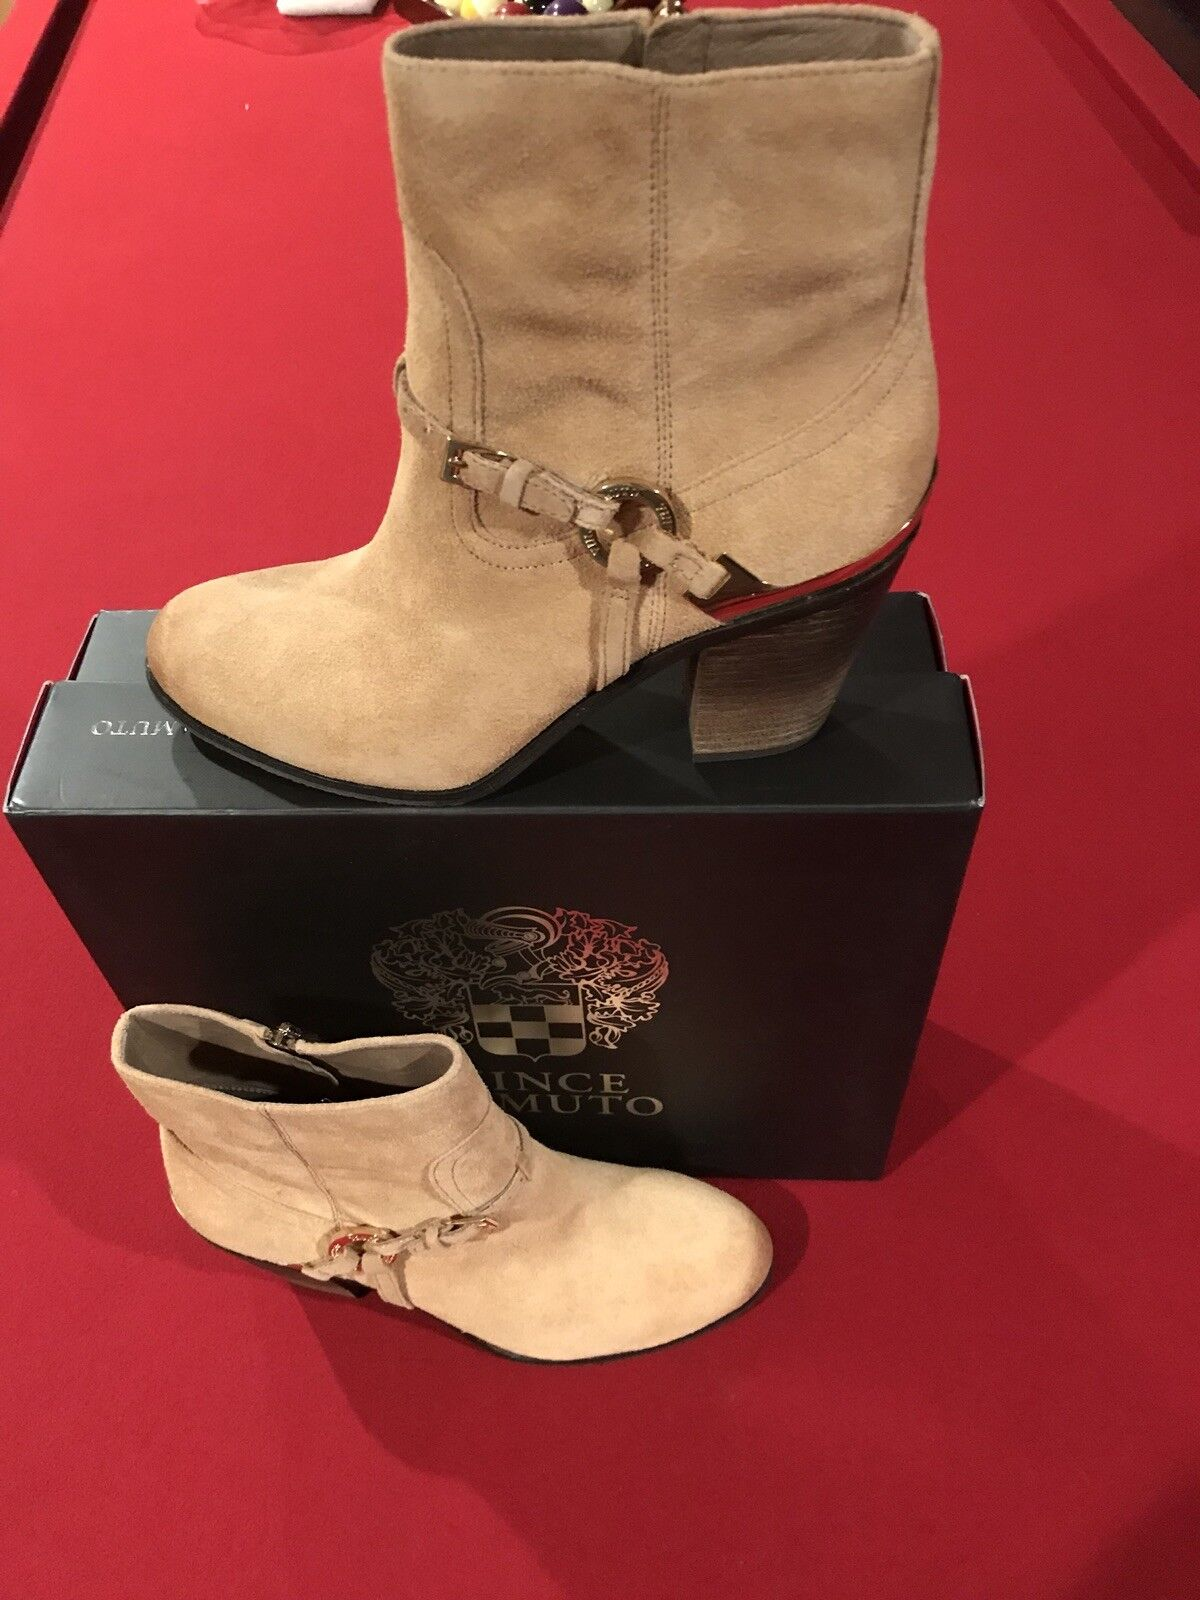 VINCE CAMUTO Greggor Bamboo Color Suede Ankle Boots - Size 8.5